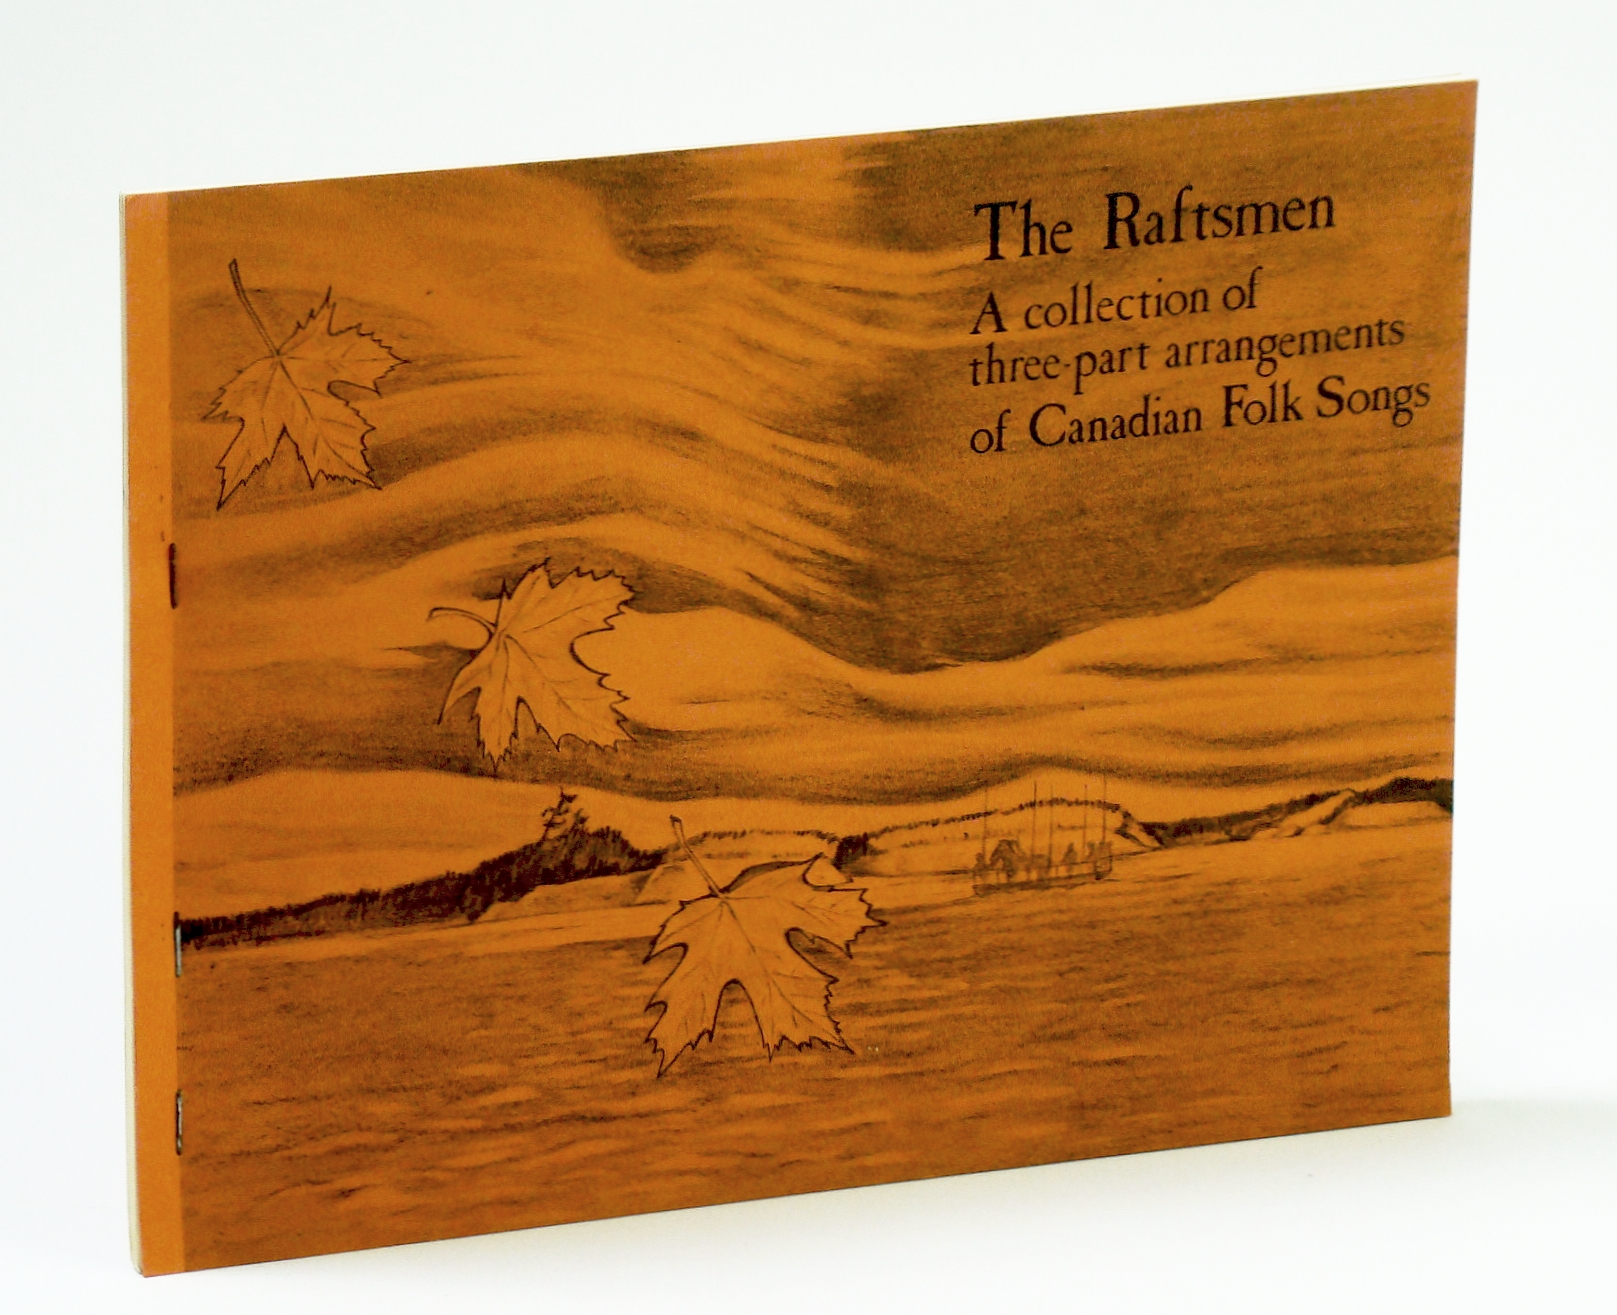 Image for The Raftsmen: A Collection of Three-Part Arrangements of Canadian Folk Songs